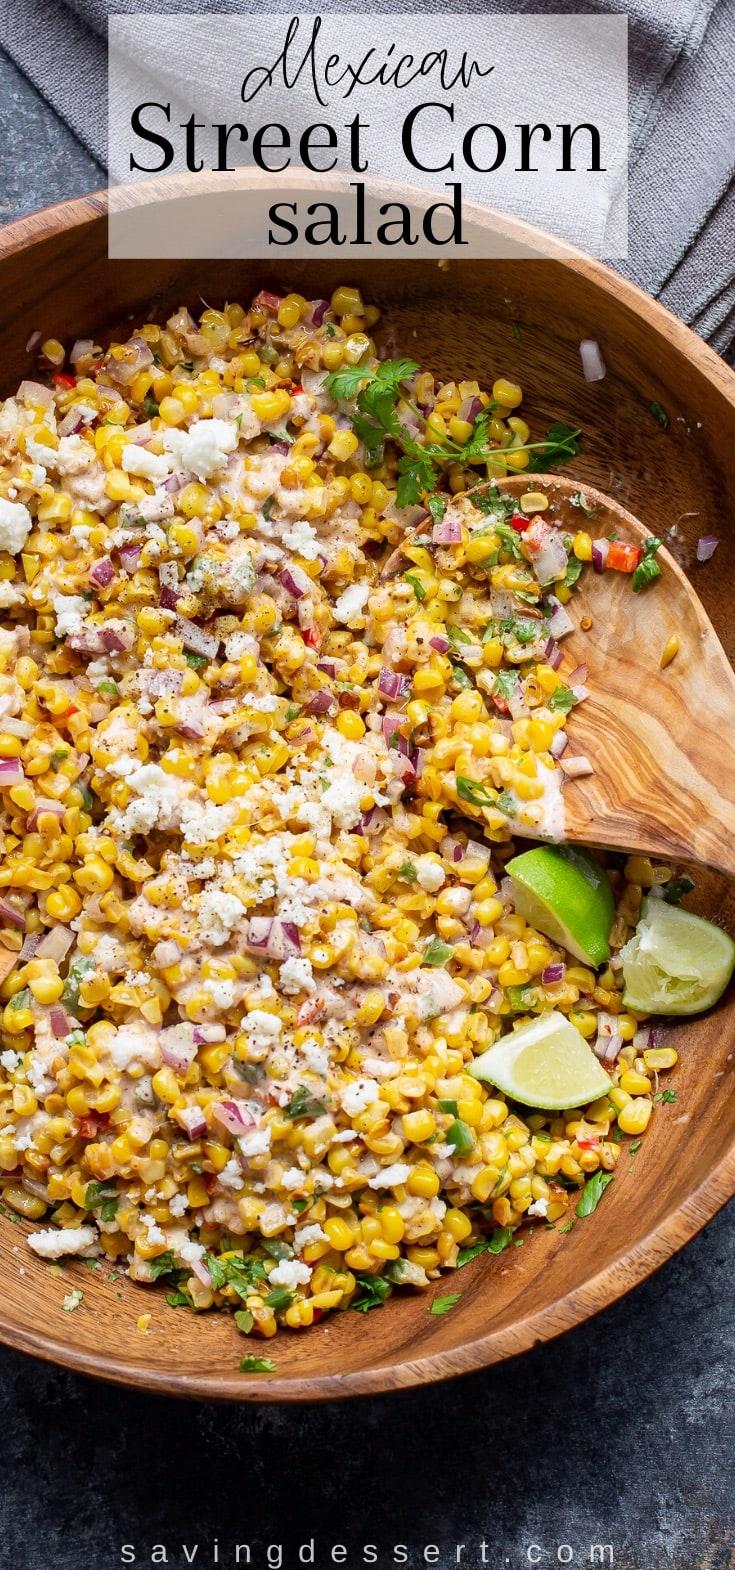 A closeup of a wooden bowl filled with a charred corn salad and a wooden spoon